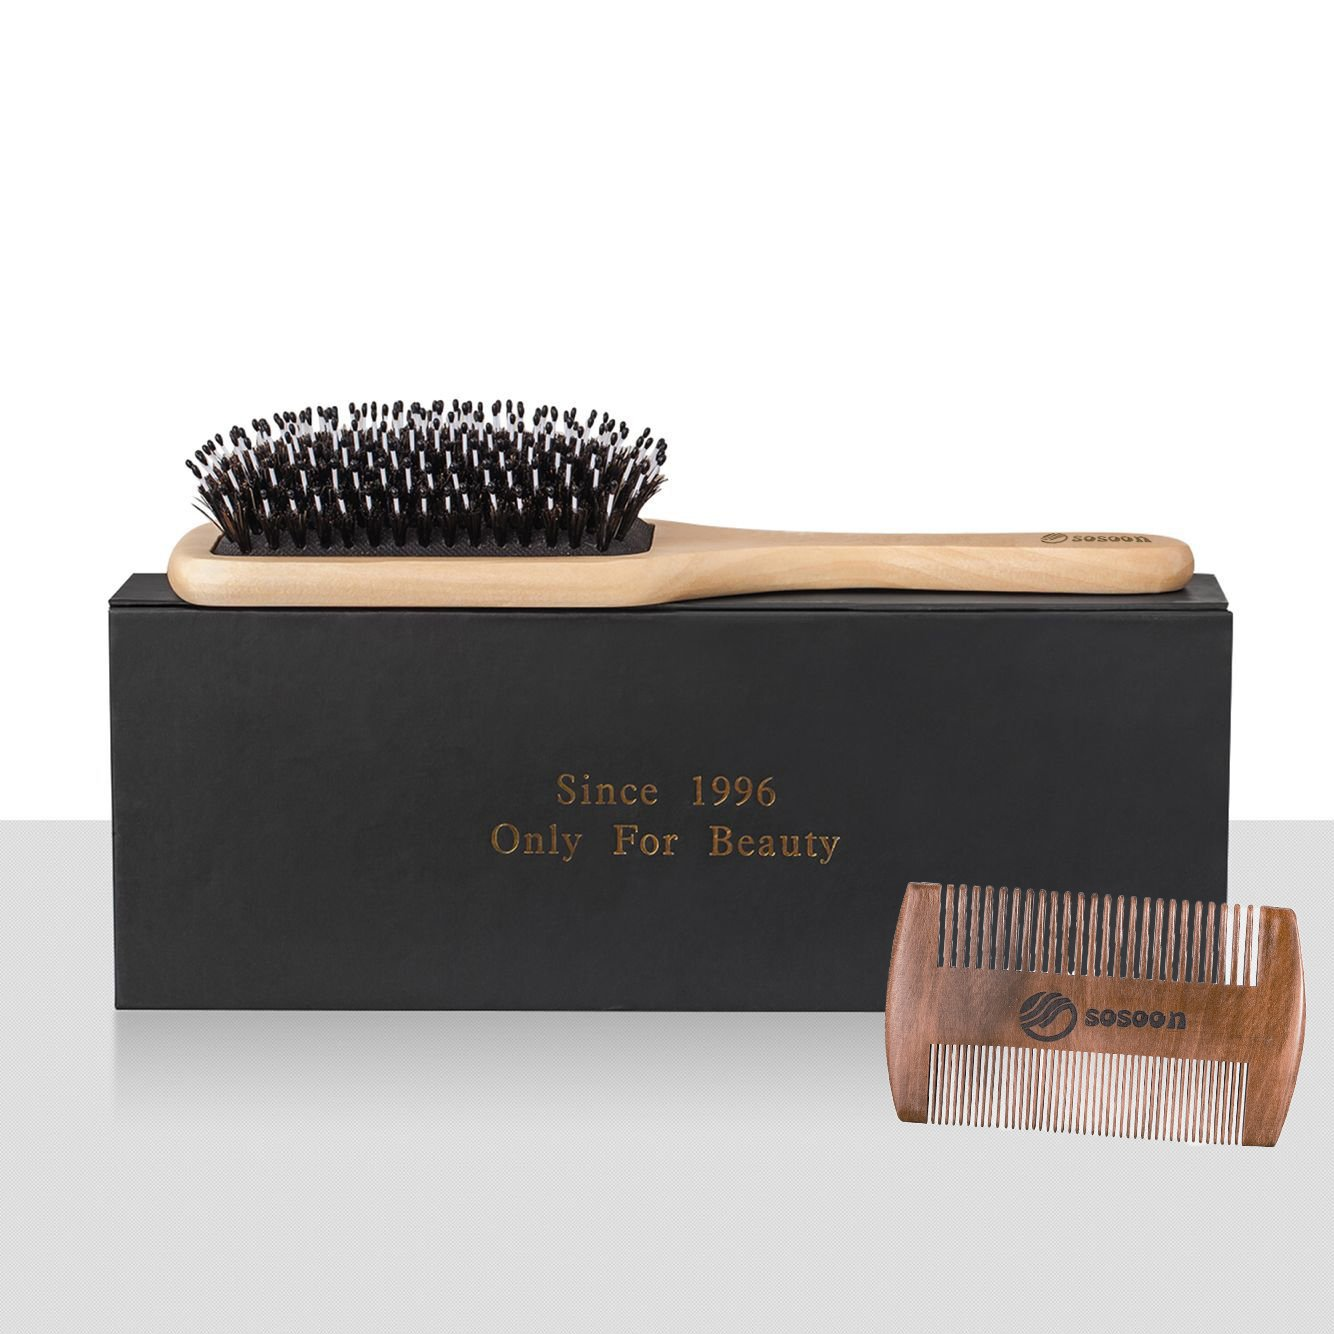 Hair Brush-Boar Bristle Hairbrush for Women Men Long Thick Fine Curly Wavy Dry or Wet Hair,Best Brush Set for Reducing Hair Breakage and Frizzy-Wooden Comb&Giftbox Inclued by Sosoon (Image #5)